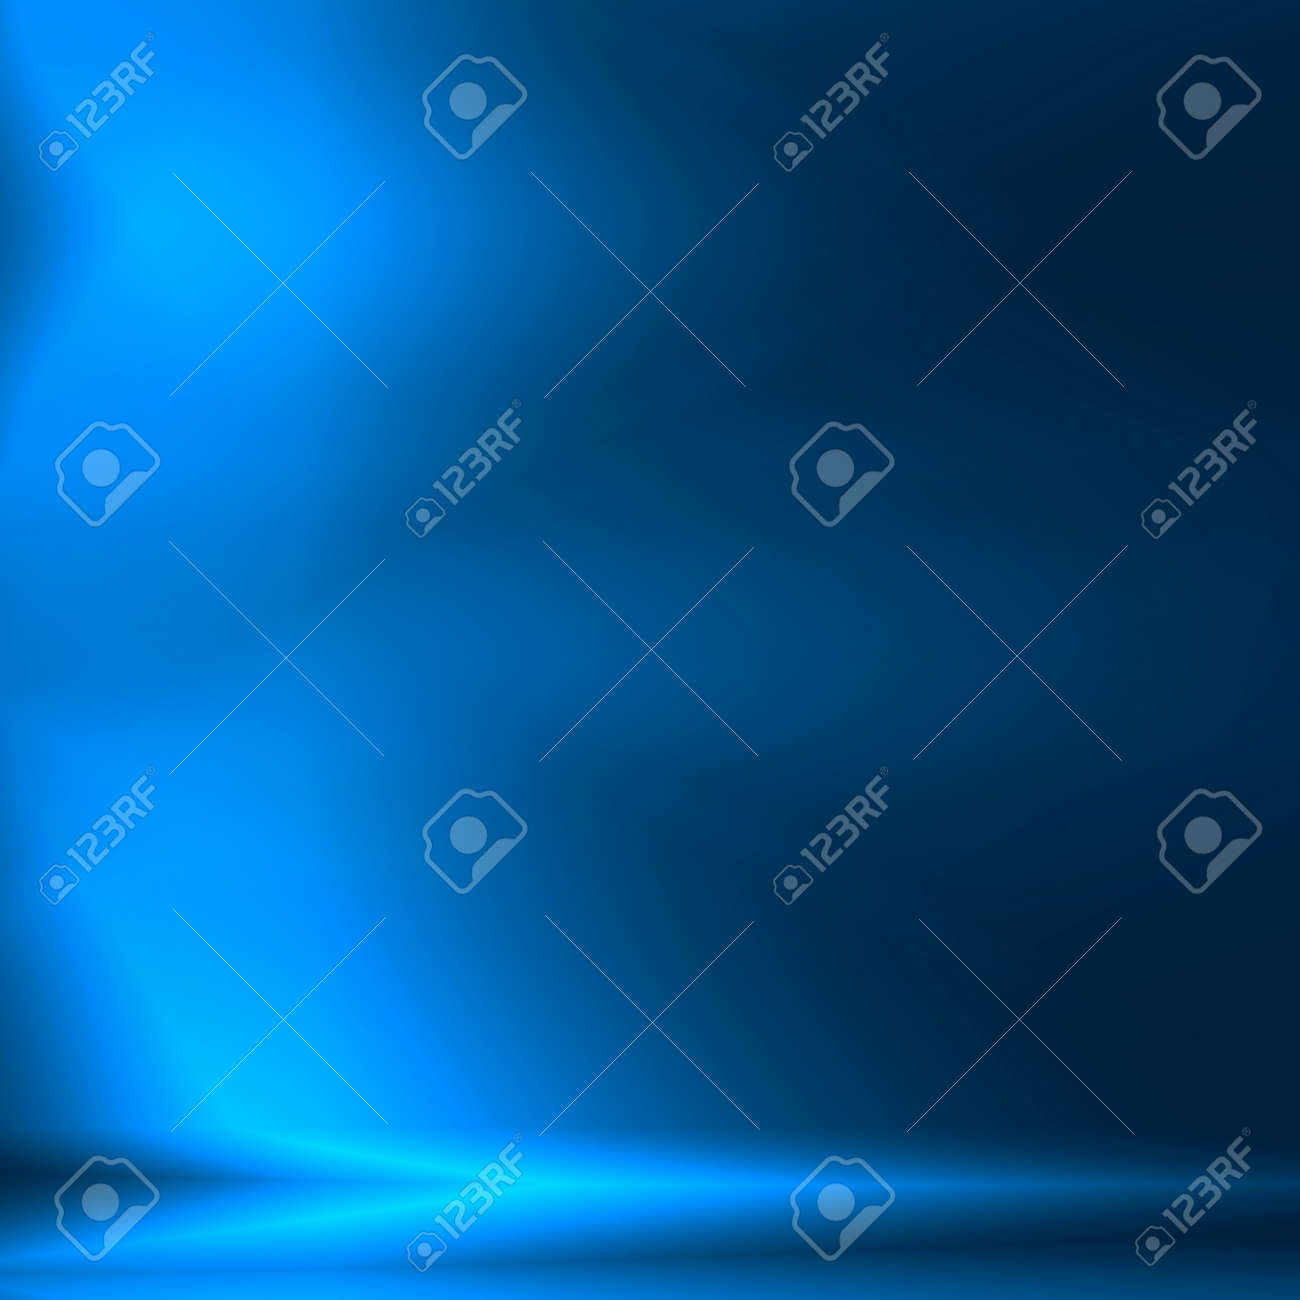 blue abstract background as square banner template for modern technology or bank finance advertising Stock Photo - 25243076